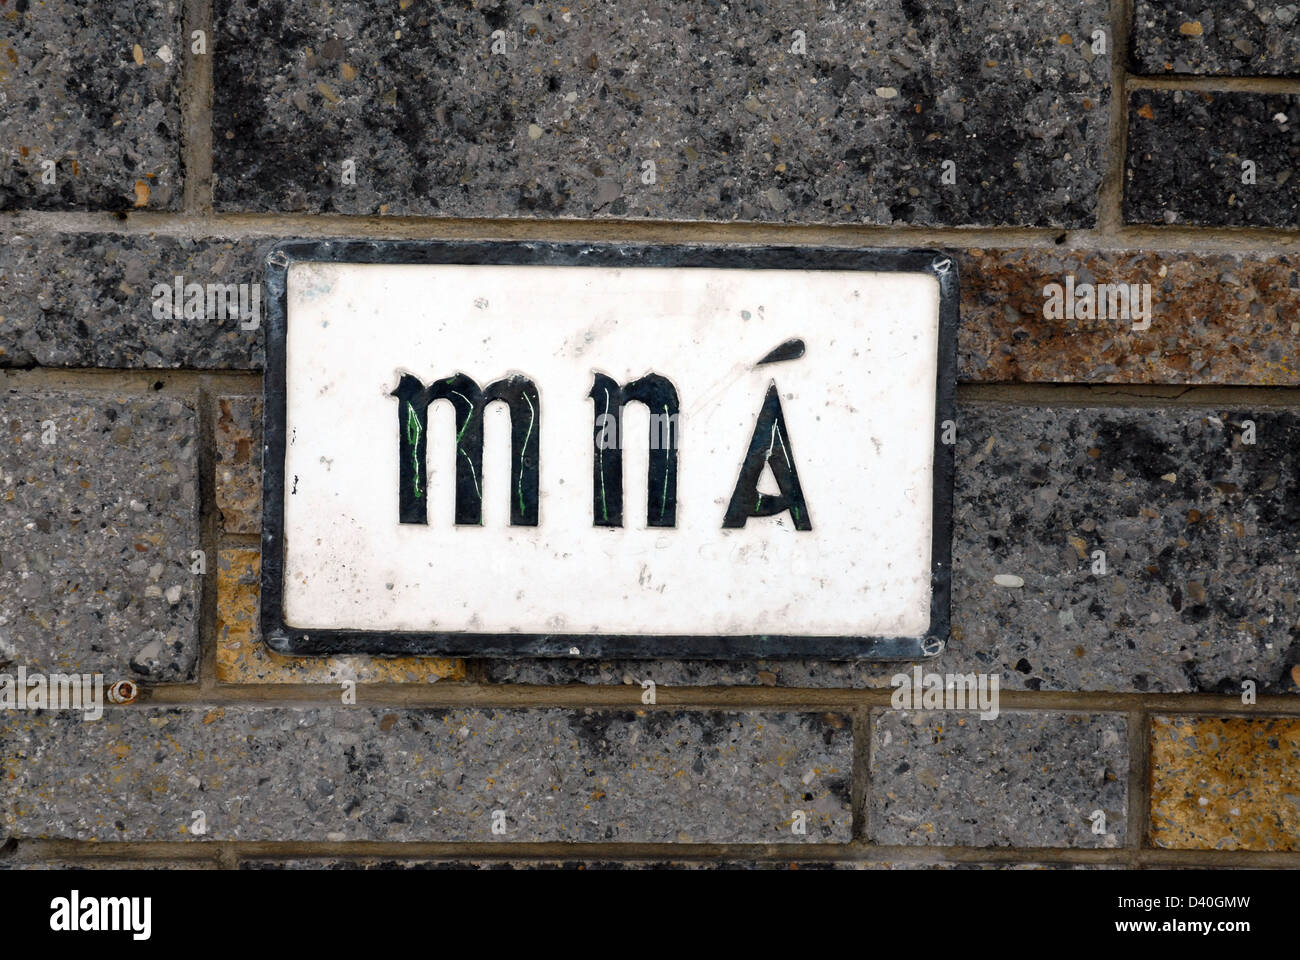 Mna is for Women's toilet or washroom in Gaelic, seen in Ireland - Stock Image